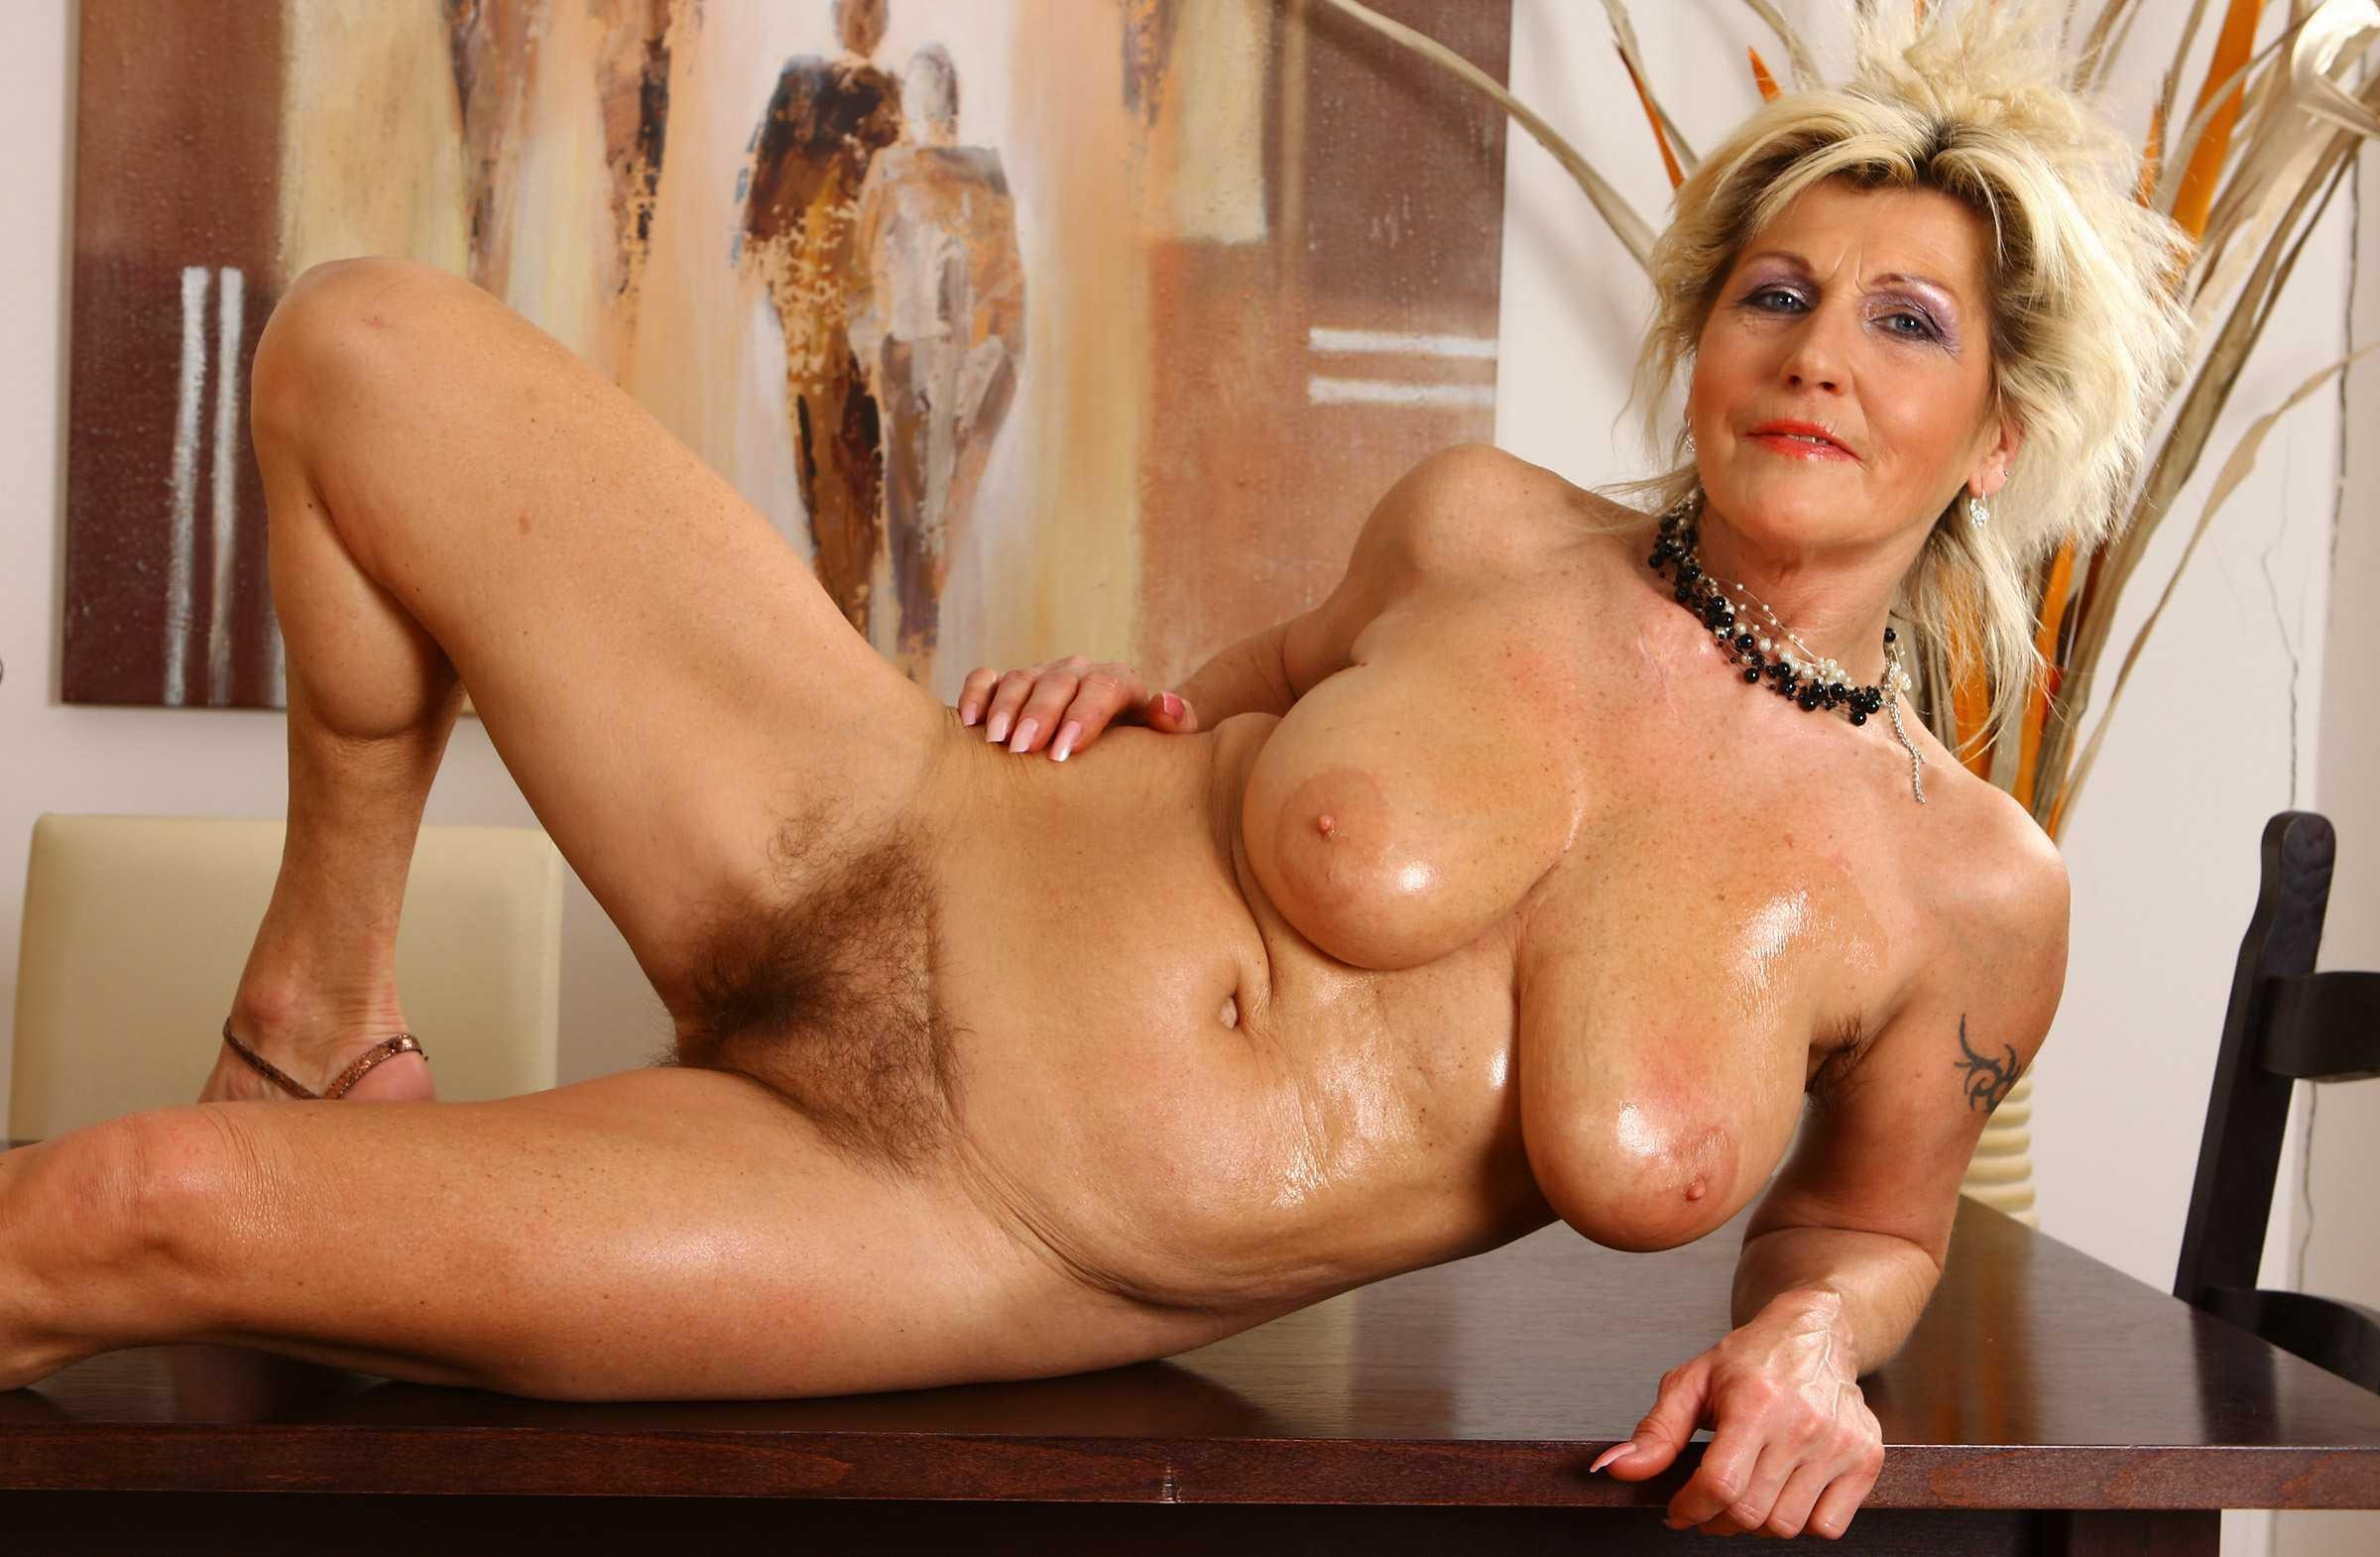 Mature female porn